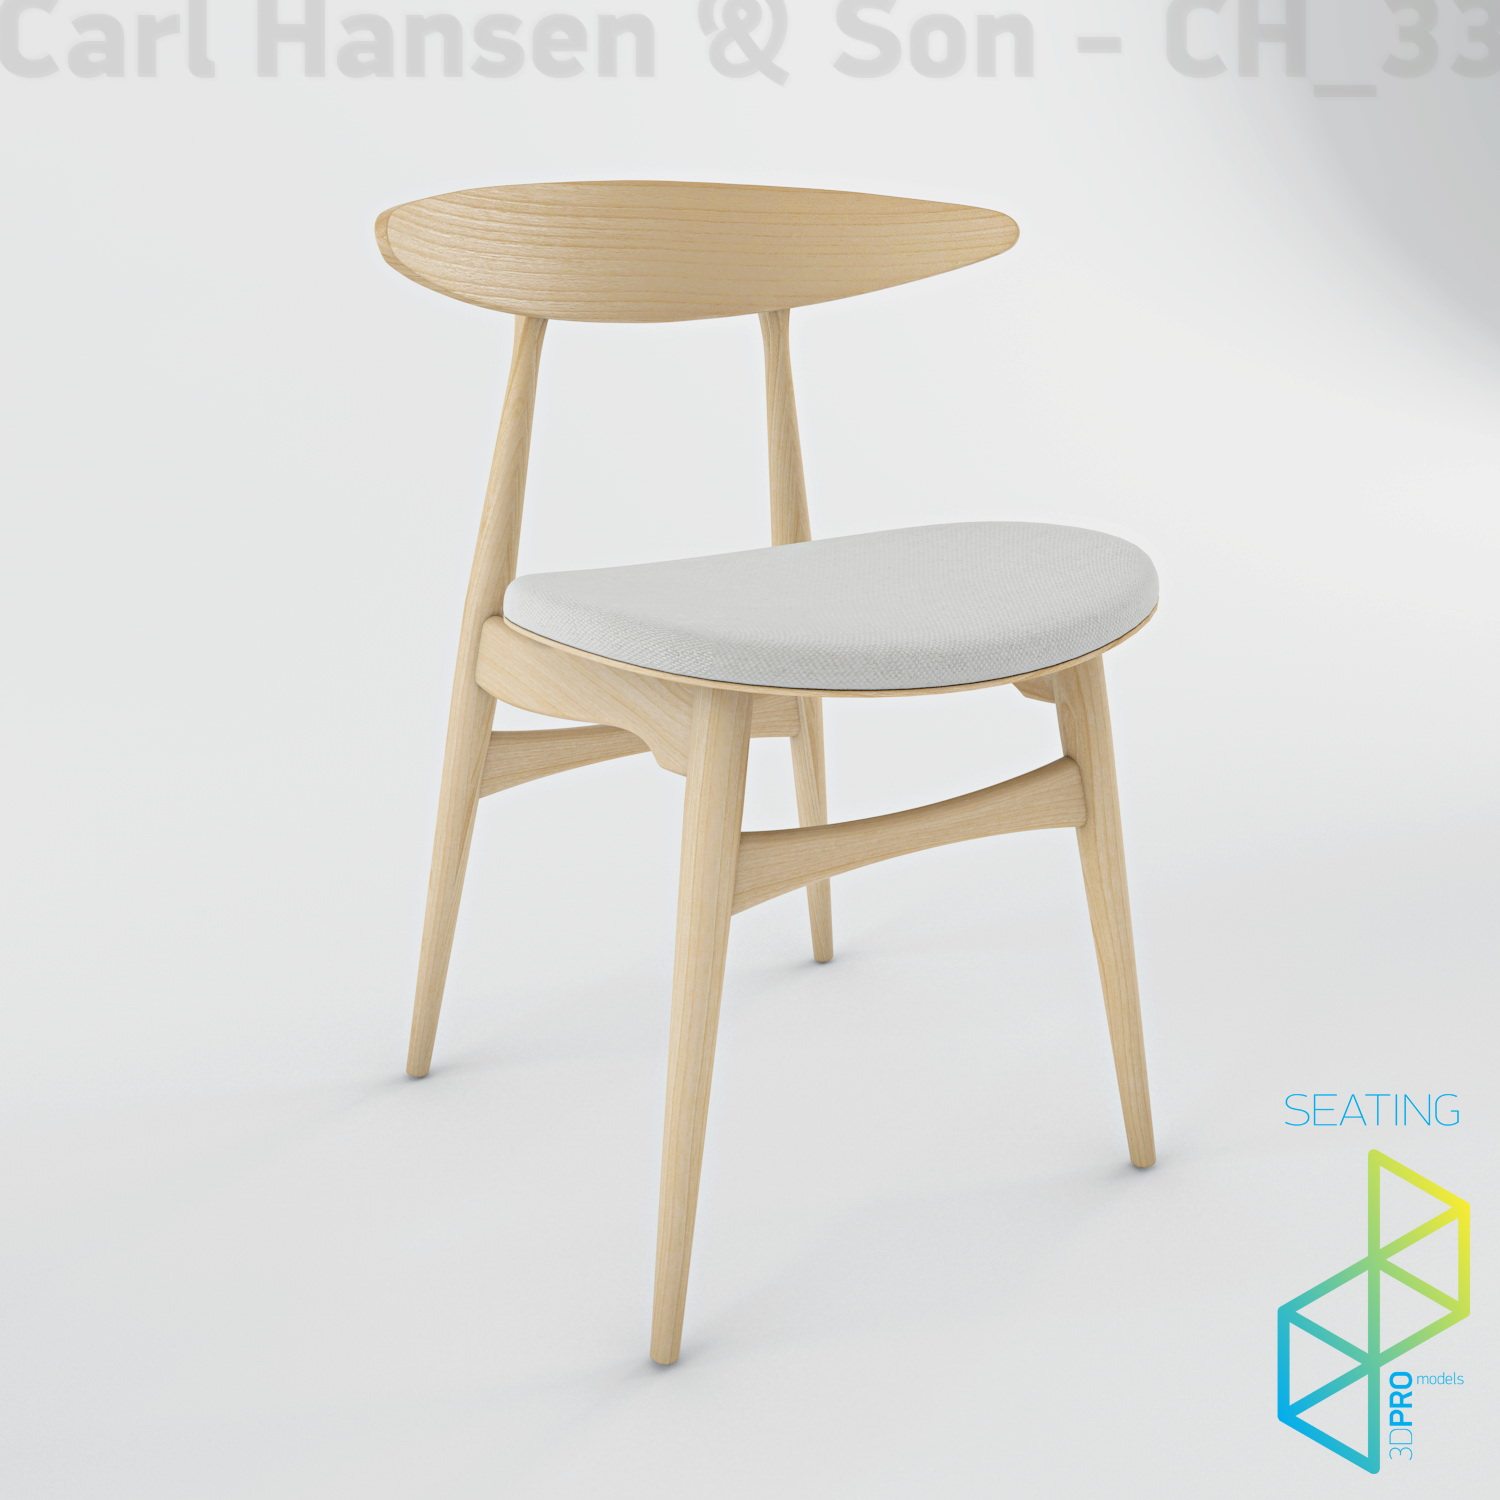 3D model Carl Hansen Son CH33